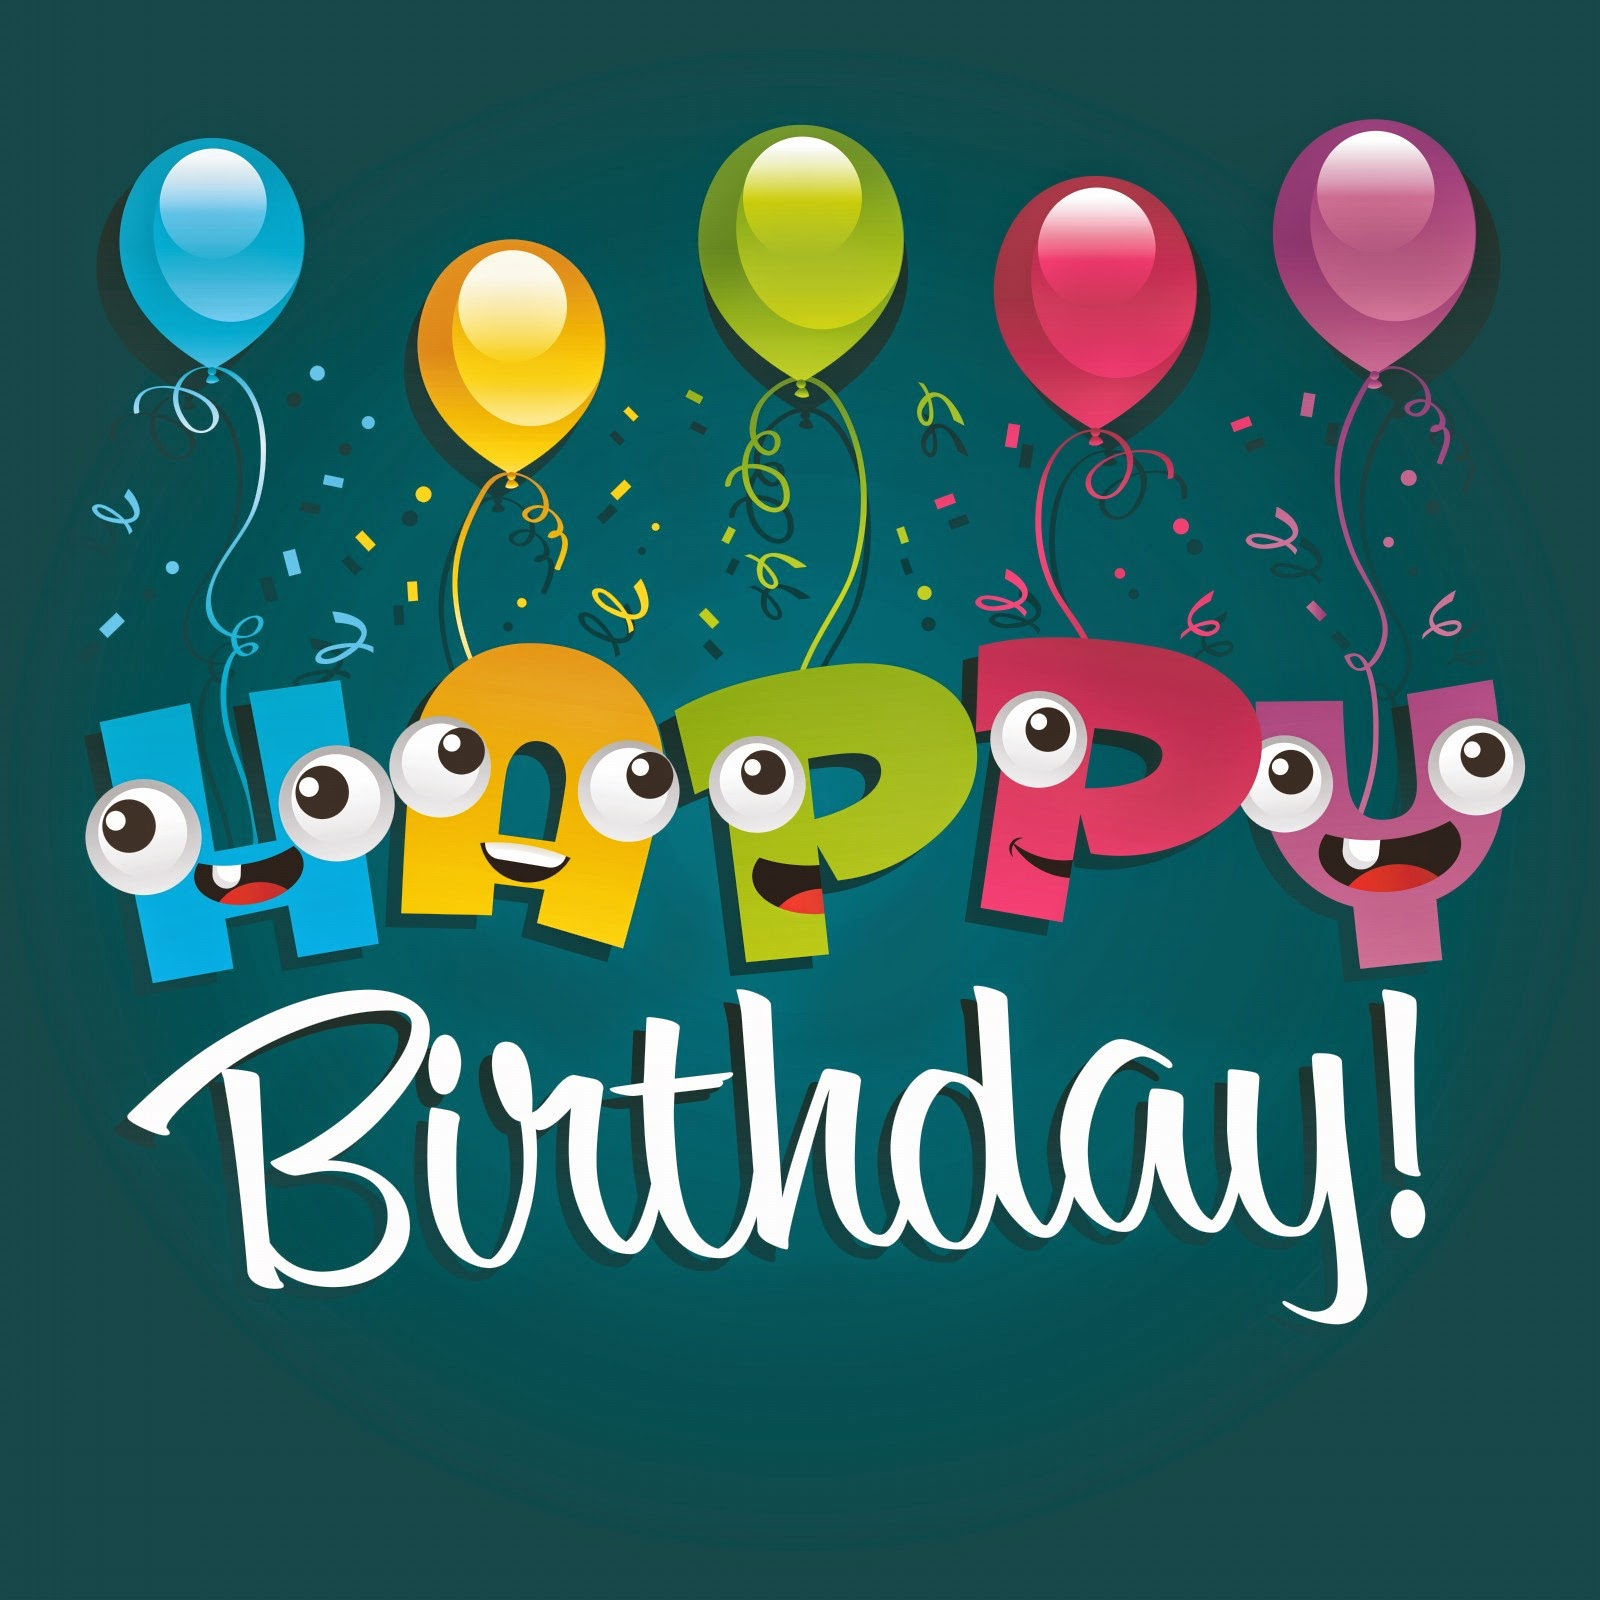 Online Happy Birthday Cards gangcraftnet – Printable Online Birthday Cards